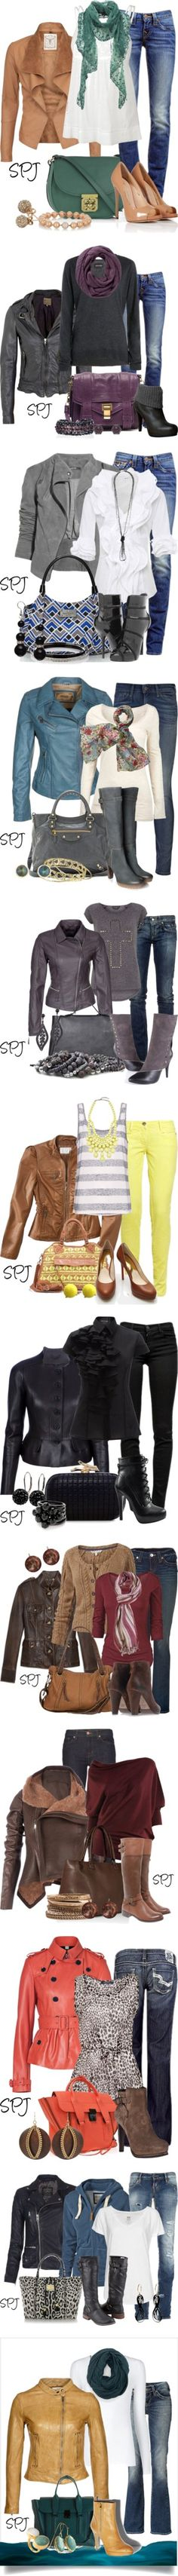 """Leather Jacket Love"" by s-p-j ❤ liked on Polyvore"